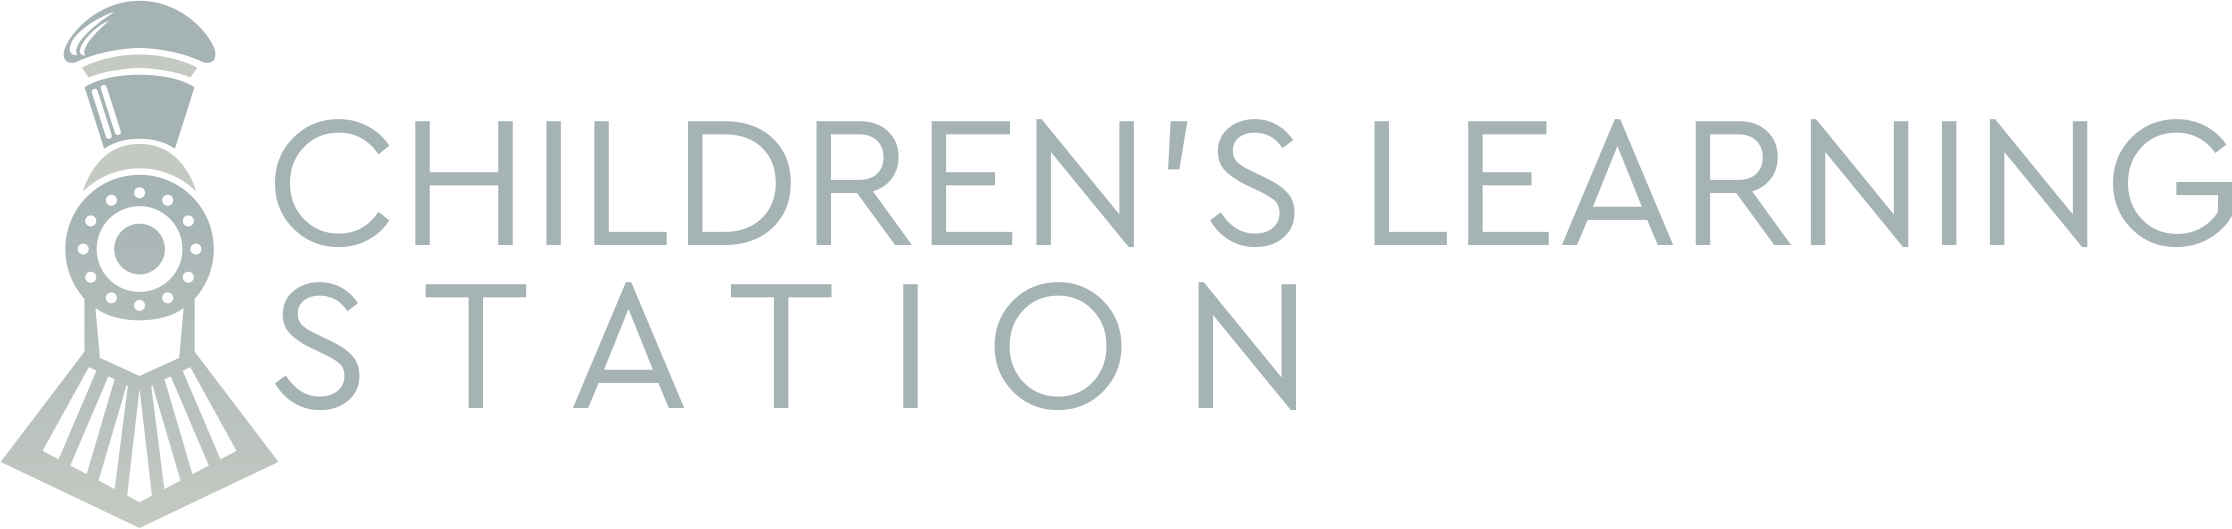 Children's Learning Station Logo